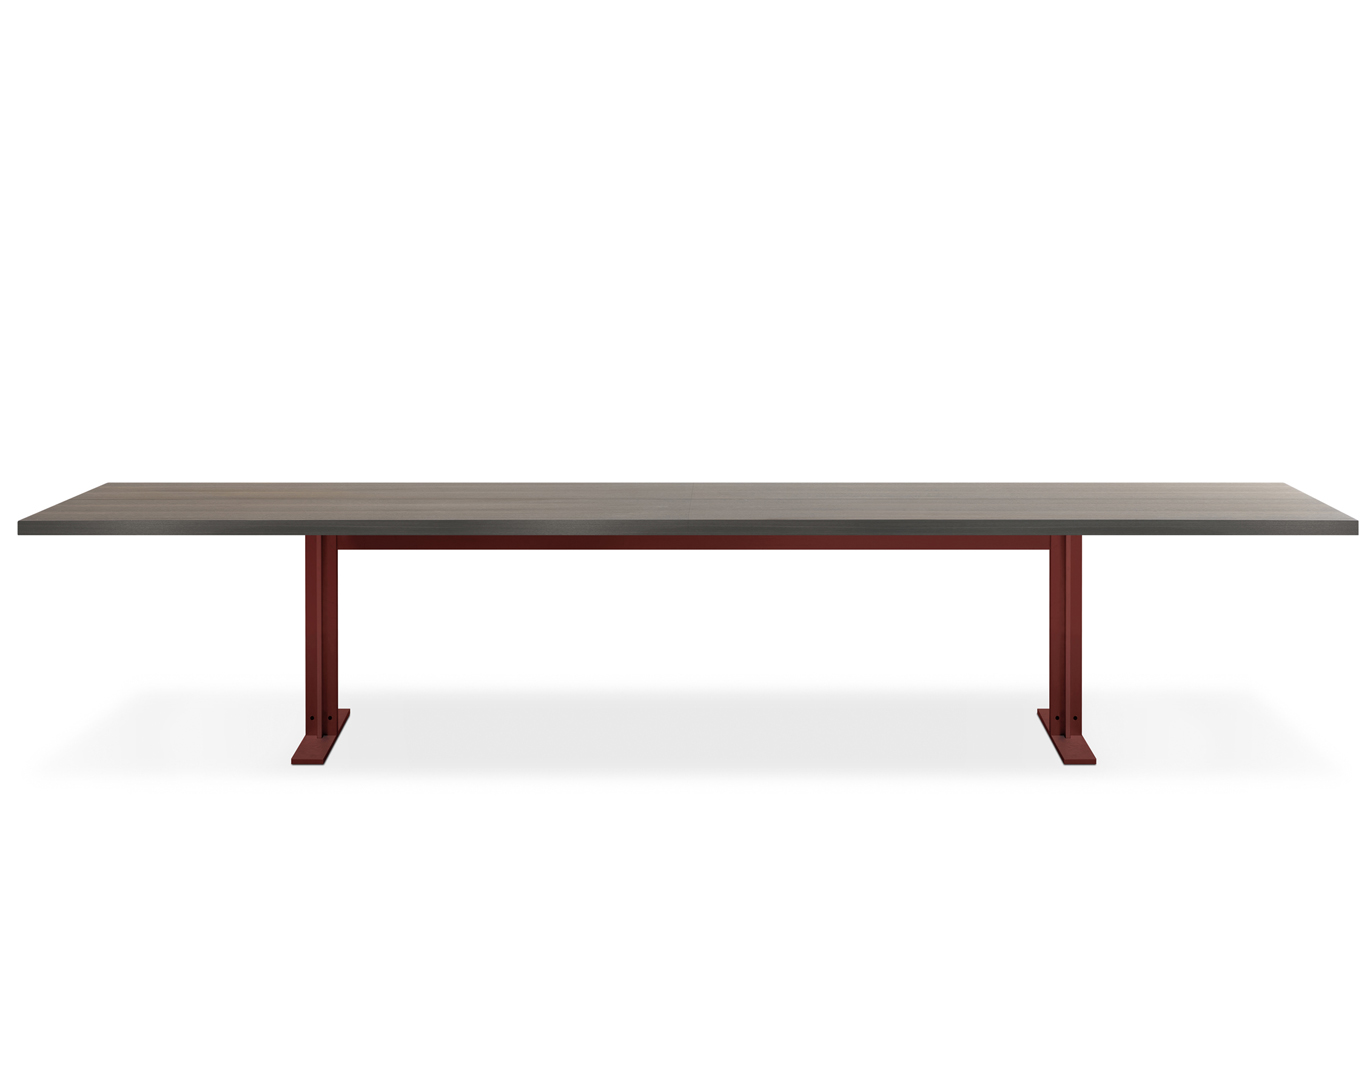 Memo Table, Piero Lissoni, Lema